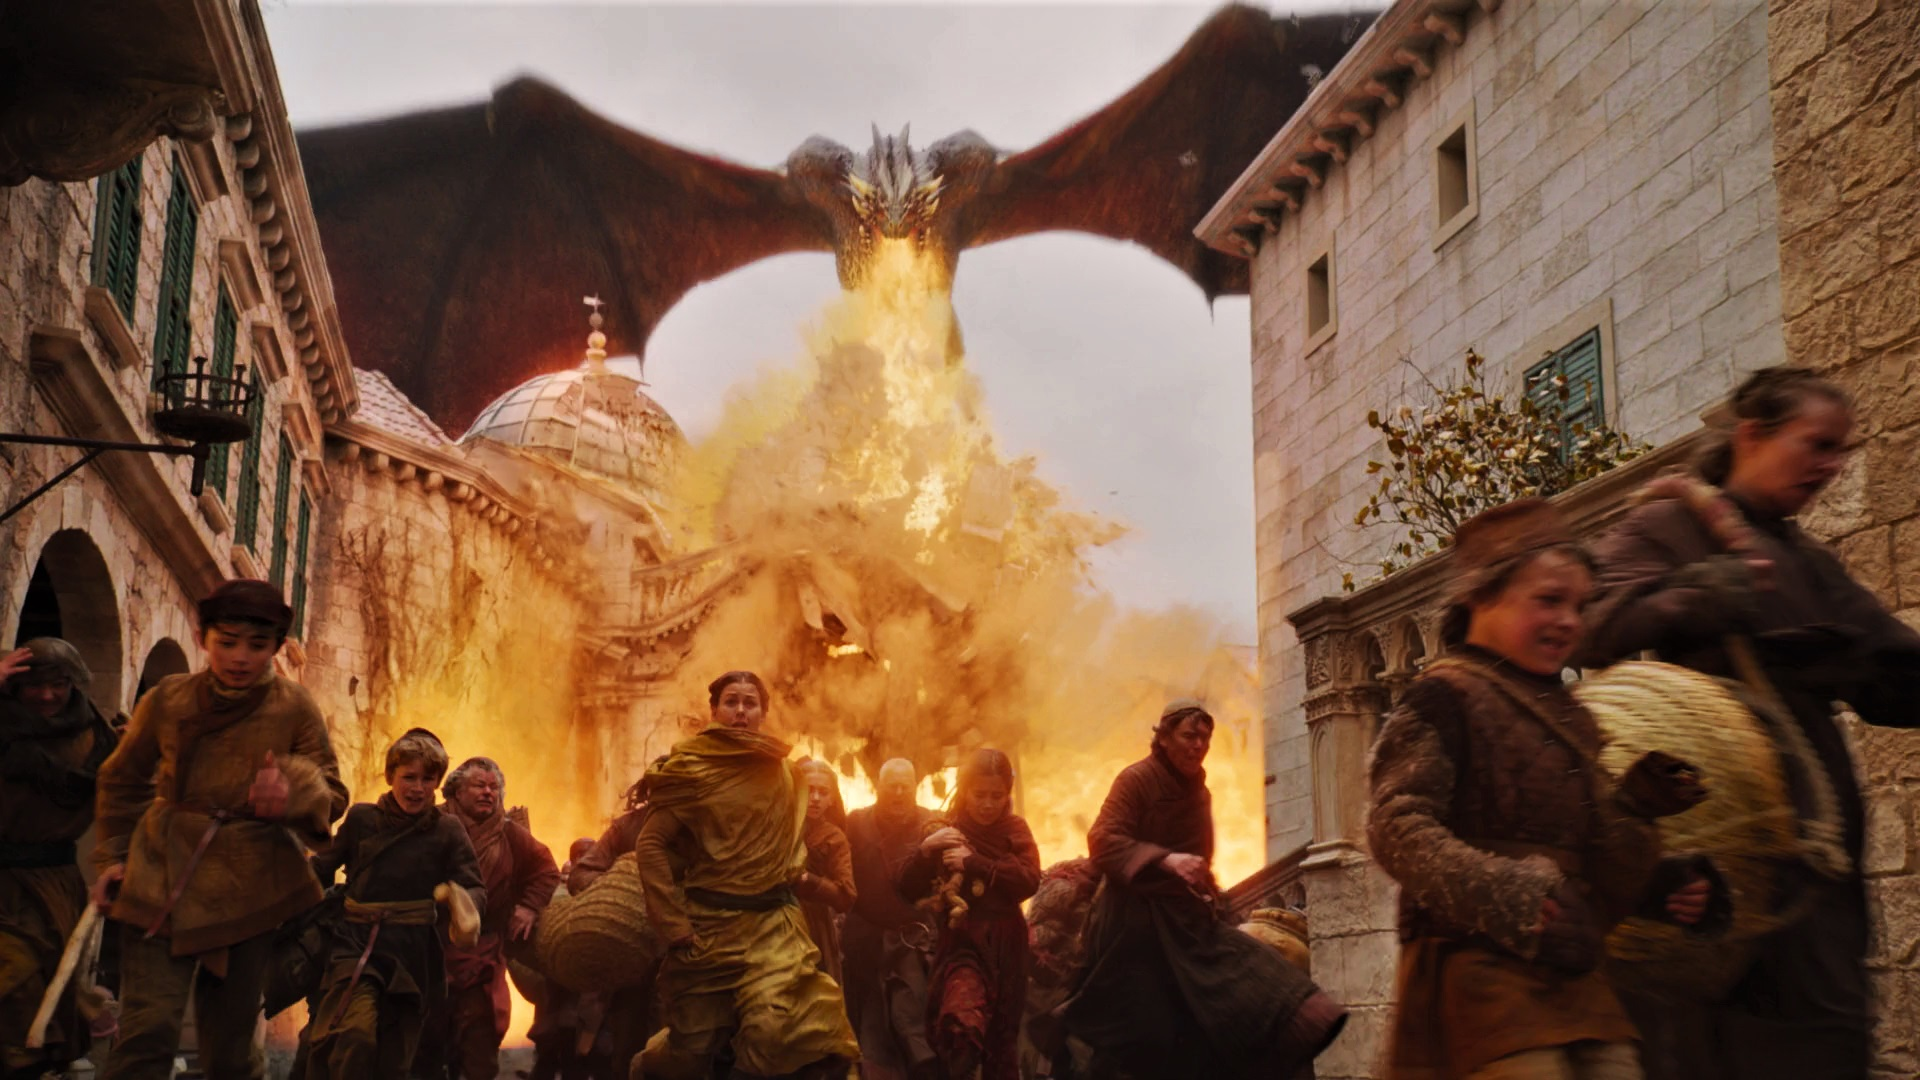 King's Landing Battle 805 Massacre Fire Blood Daenerys Dany Targaryen Drogon Season 8 The Bells